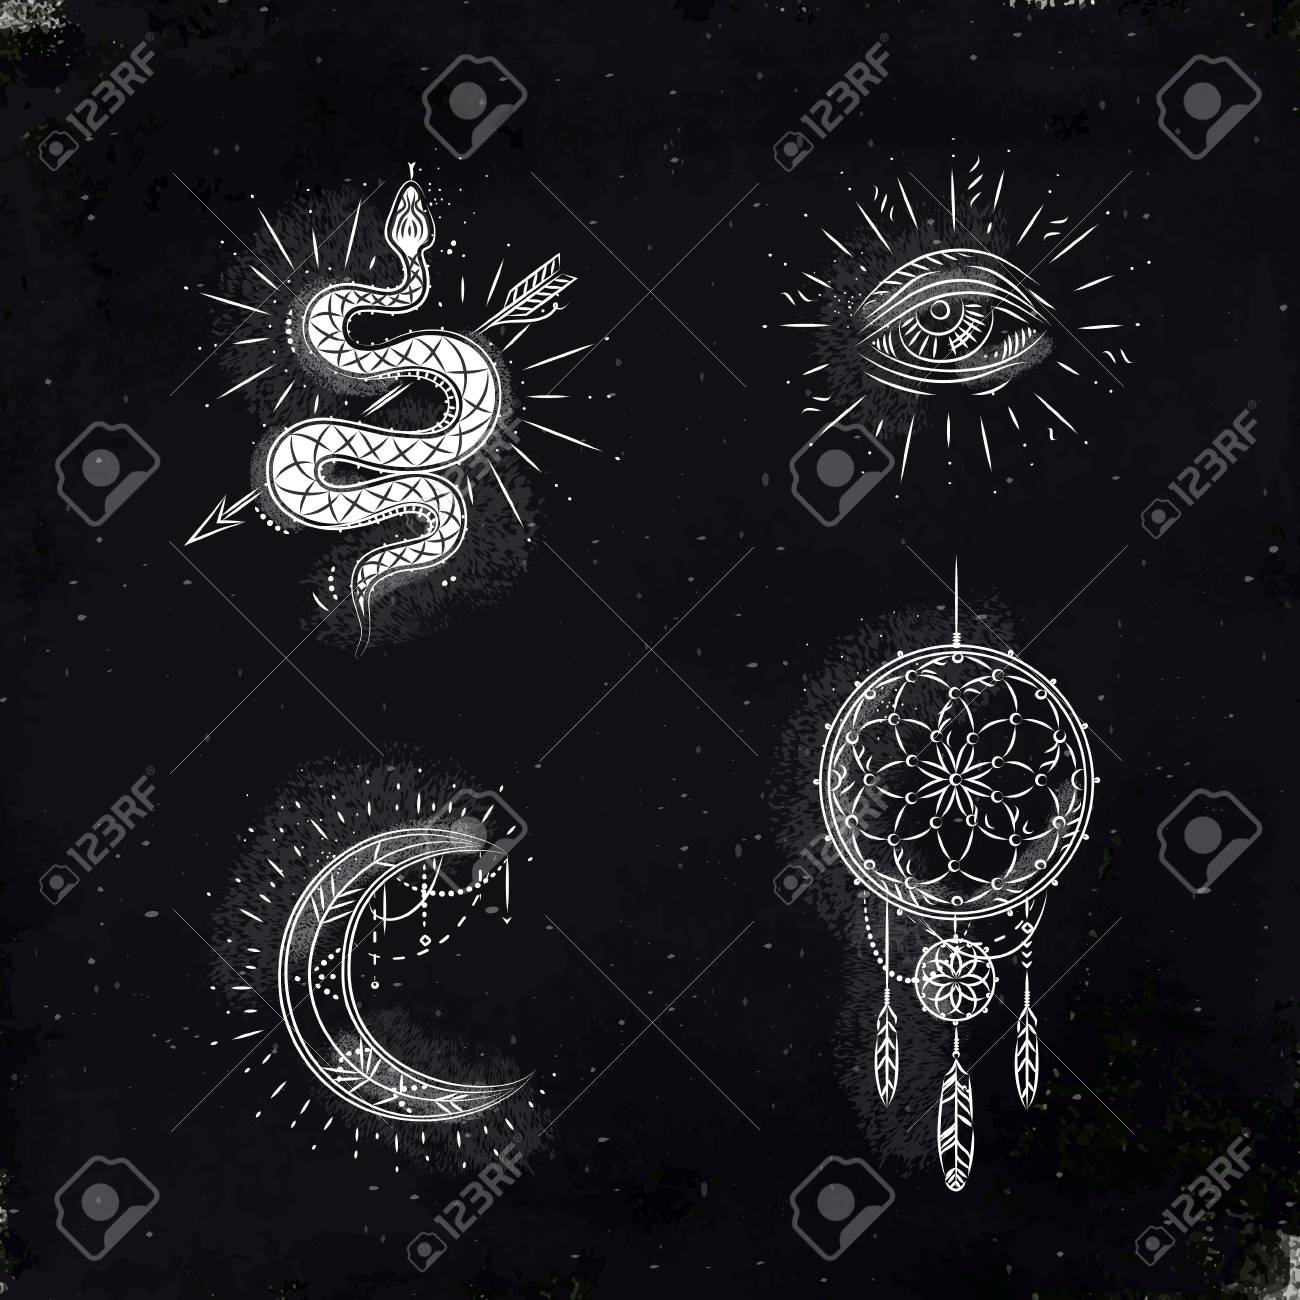 Magic and mystic signs and symbols snake, eye, moon, dreamcatcher drawing with chalk on chalkboard - 126561553